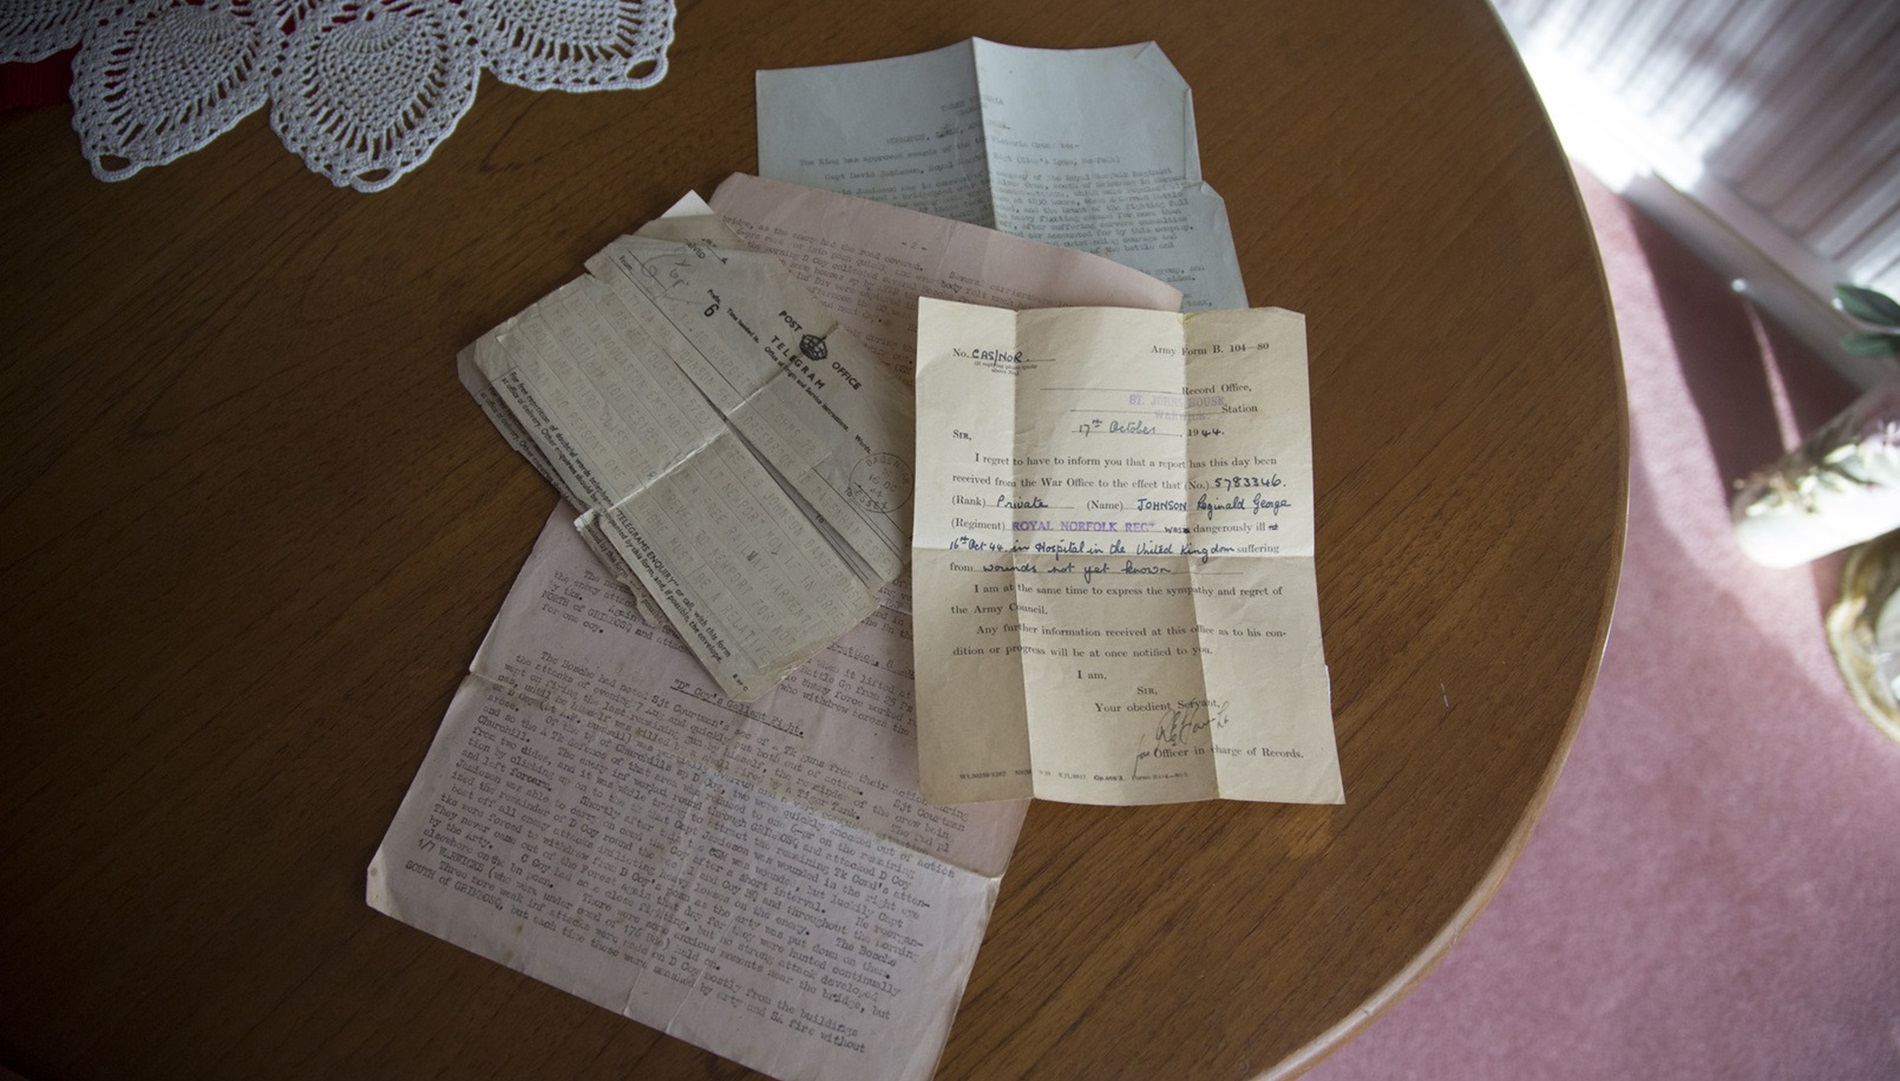 A telegram Reggie's mother received during the Second World War